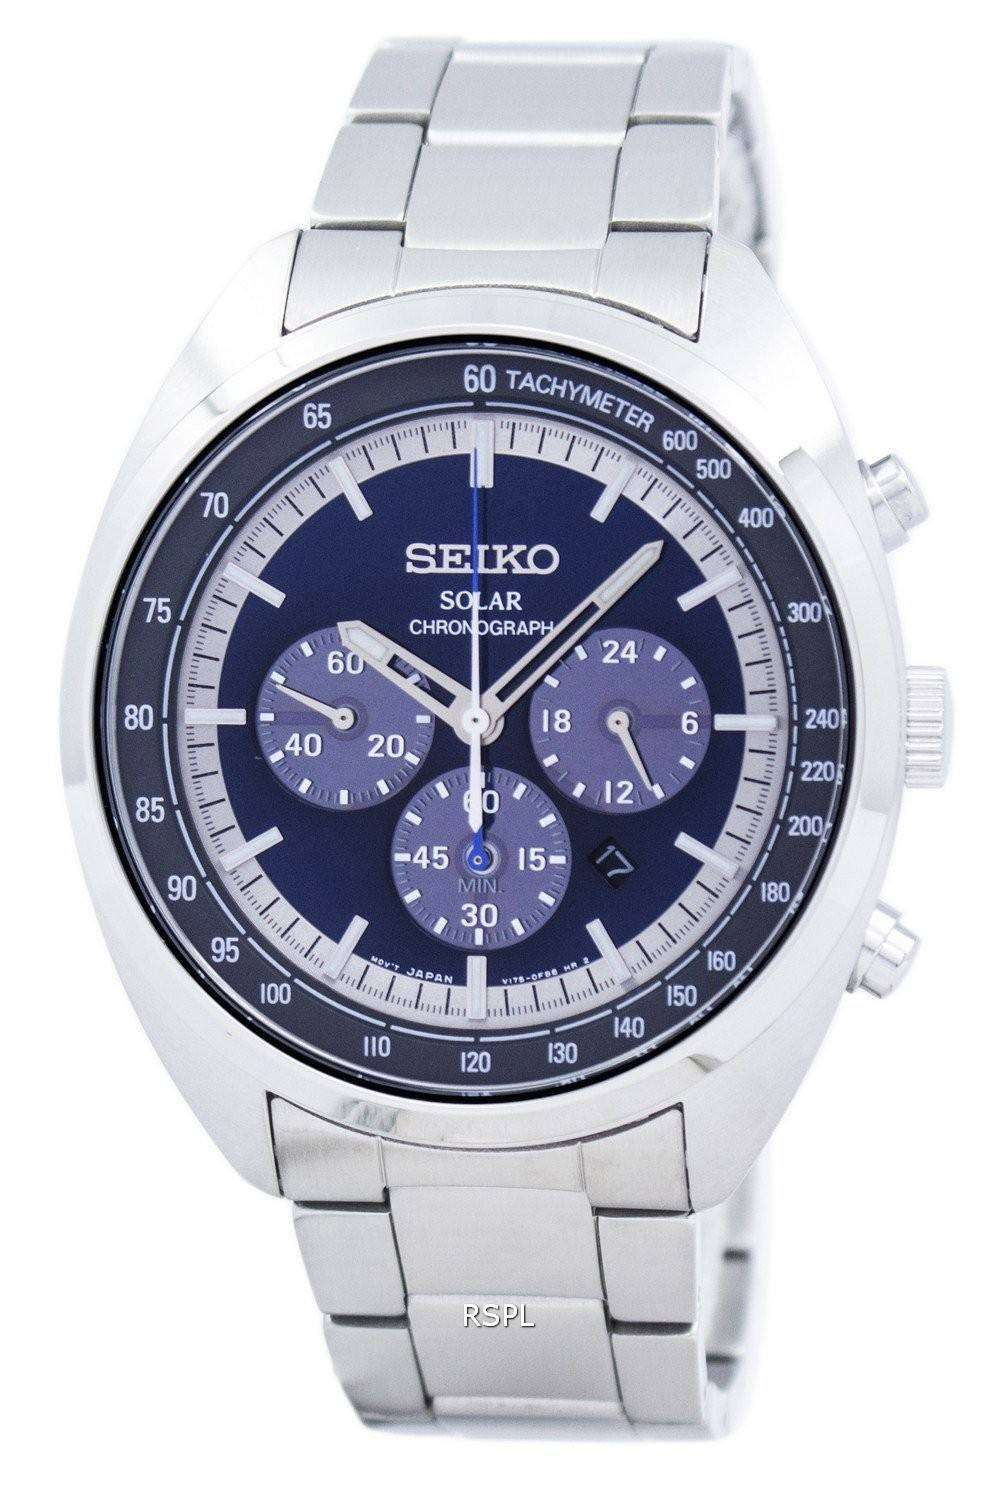 seiko solar chronograph tachymeter ssc619 ssc619p1 ssc619p. Black Bedroom Furniture Sets. Home Design Ideas